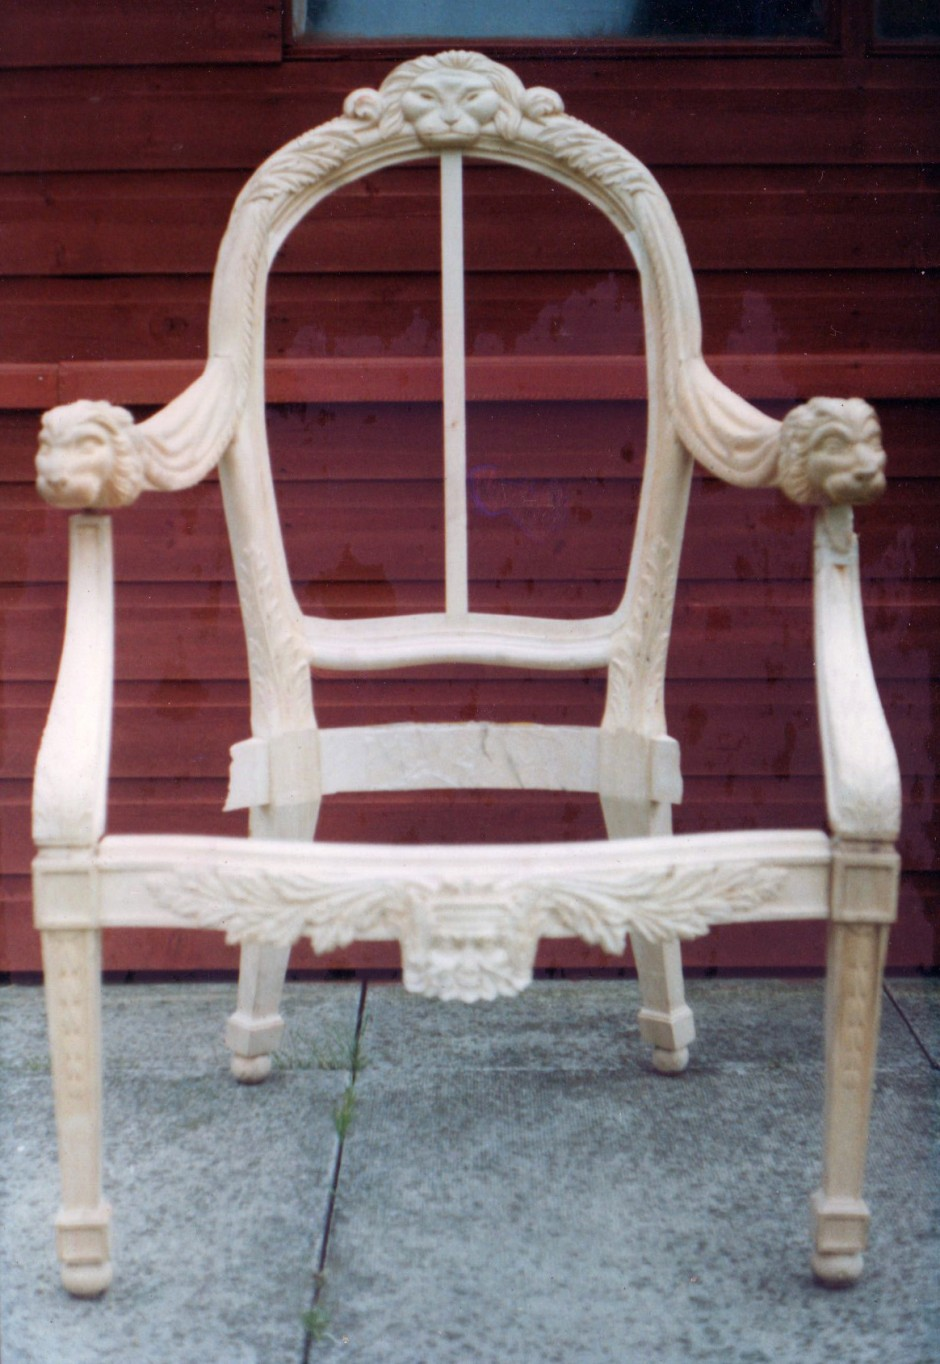 Work in progress - Chair frame assembled - chair backs elton john carved chairs